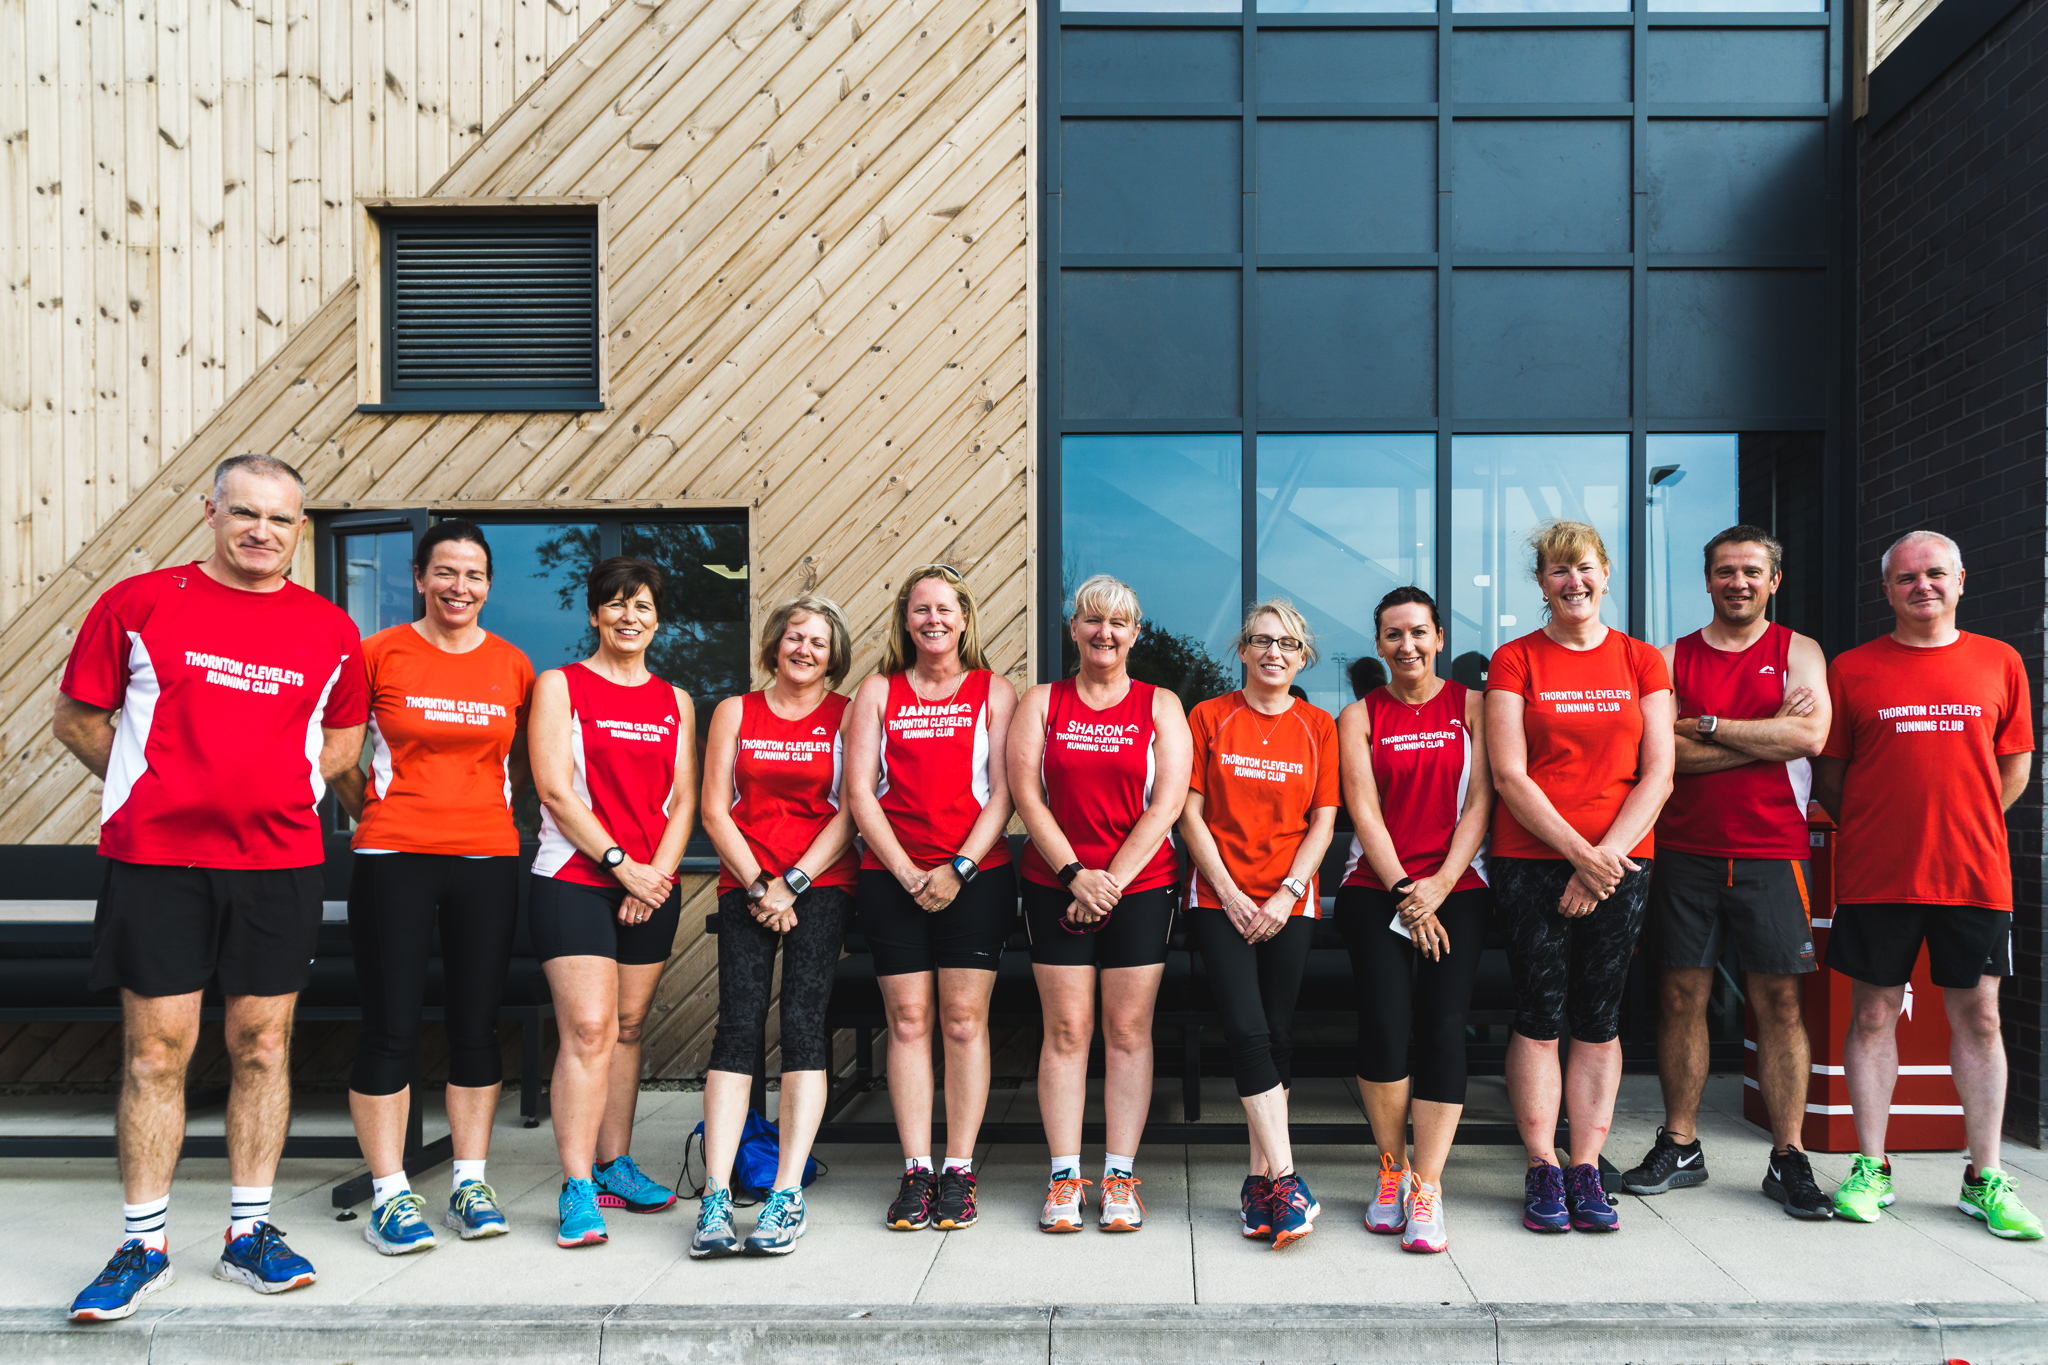 16-06-07 Team photo for Cleveleys and Thornton running club-51.jpg